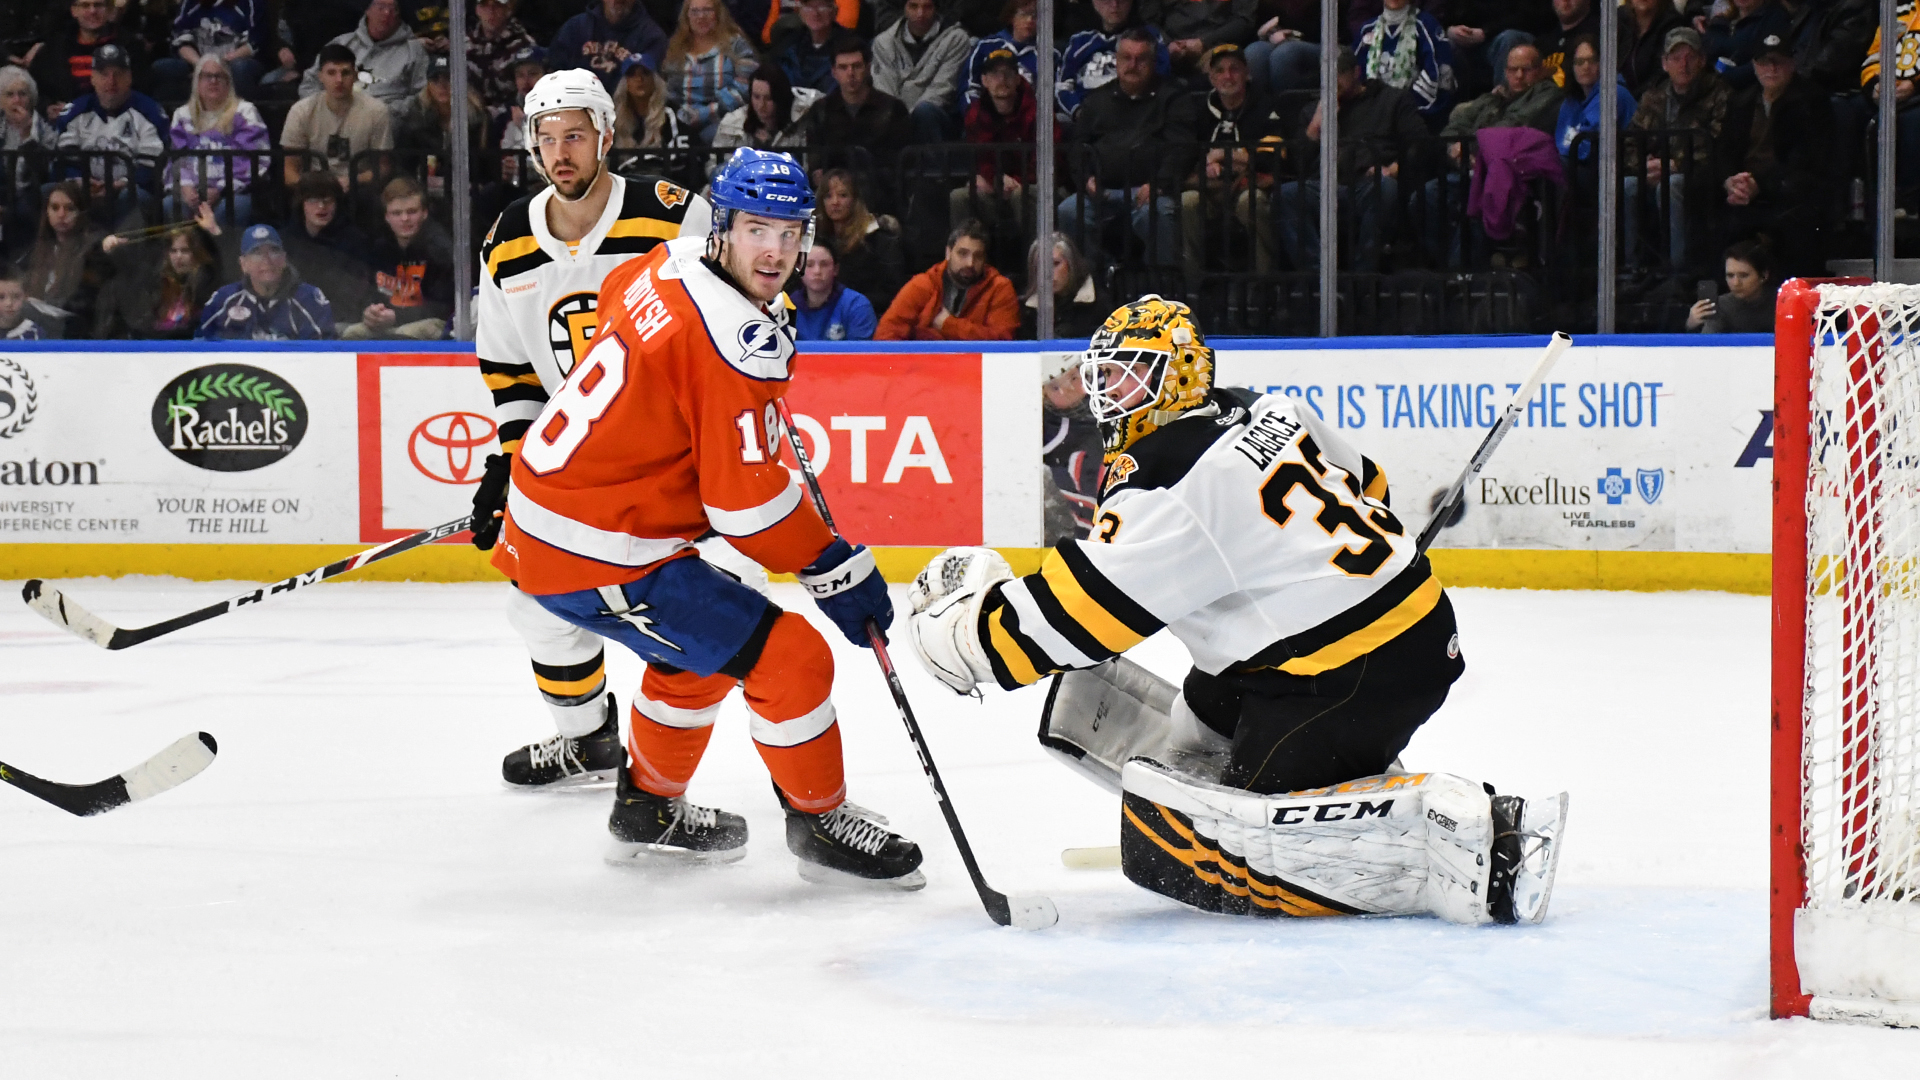 Crunch fall to Bruins, 6-2